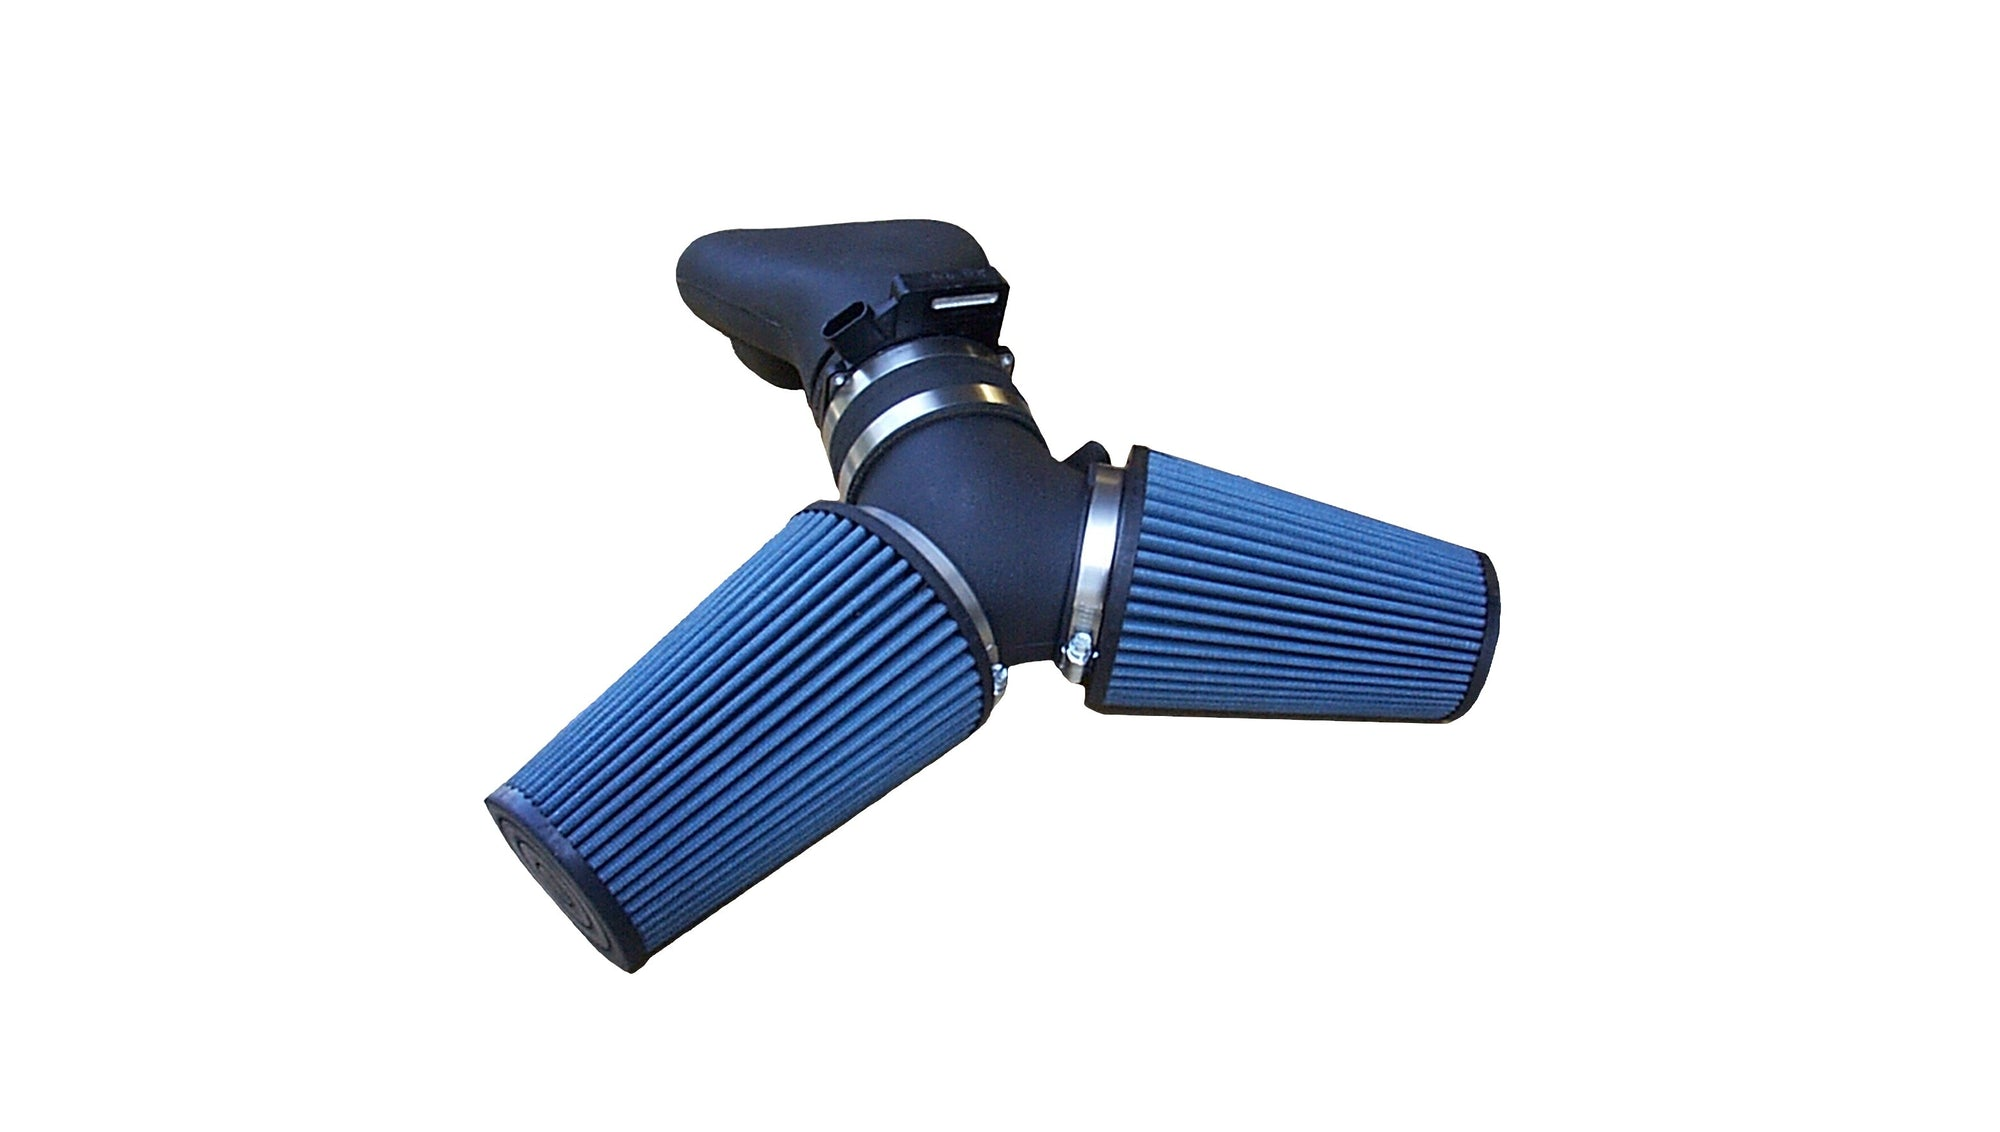 2001-2004 Chevrolet Corvette C5 Z06 5.7L V8 Open Element Air Intake